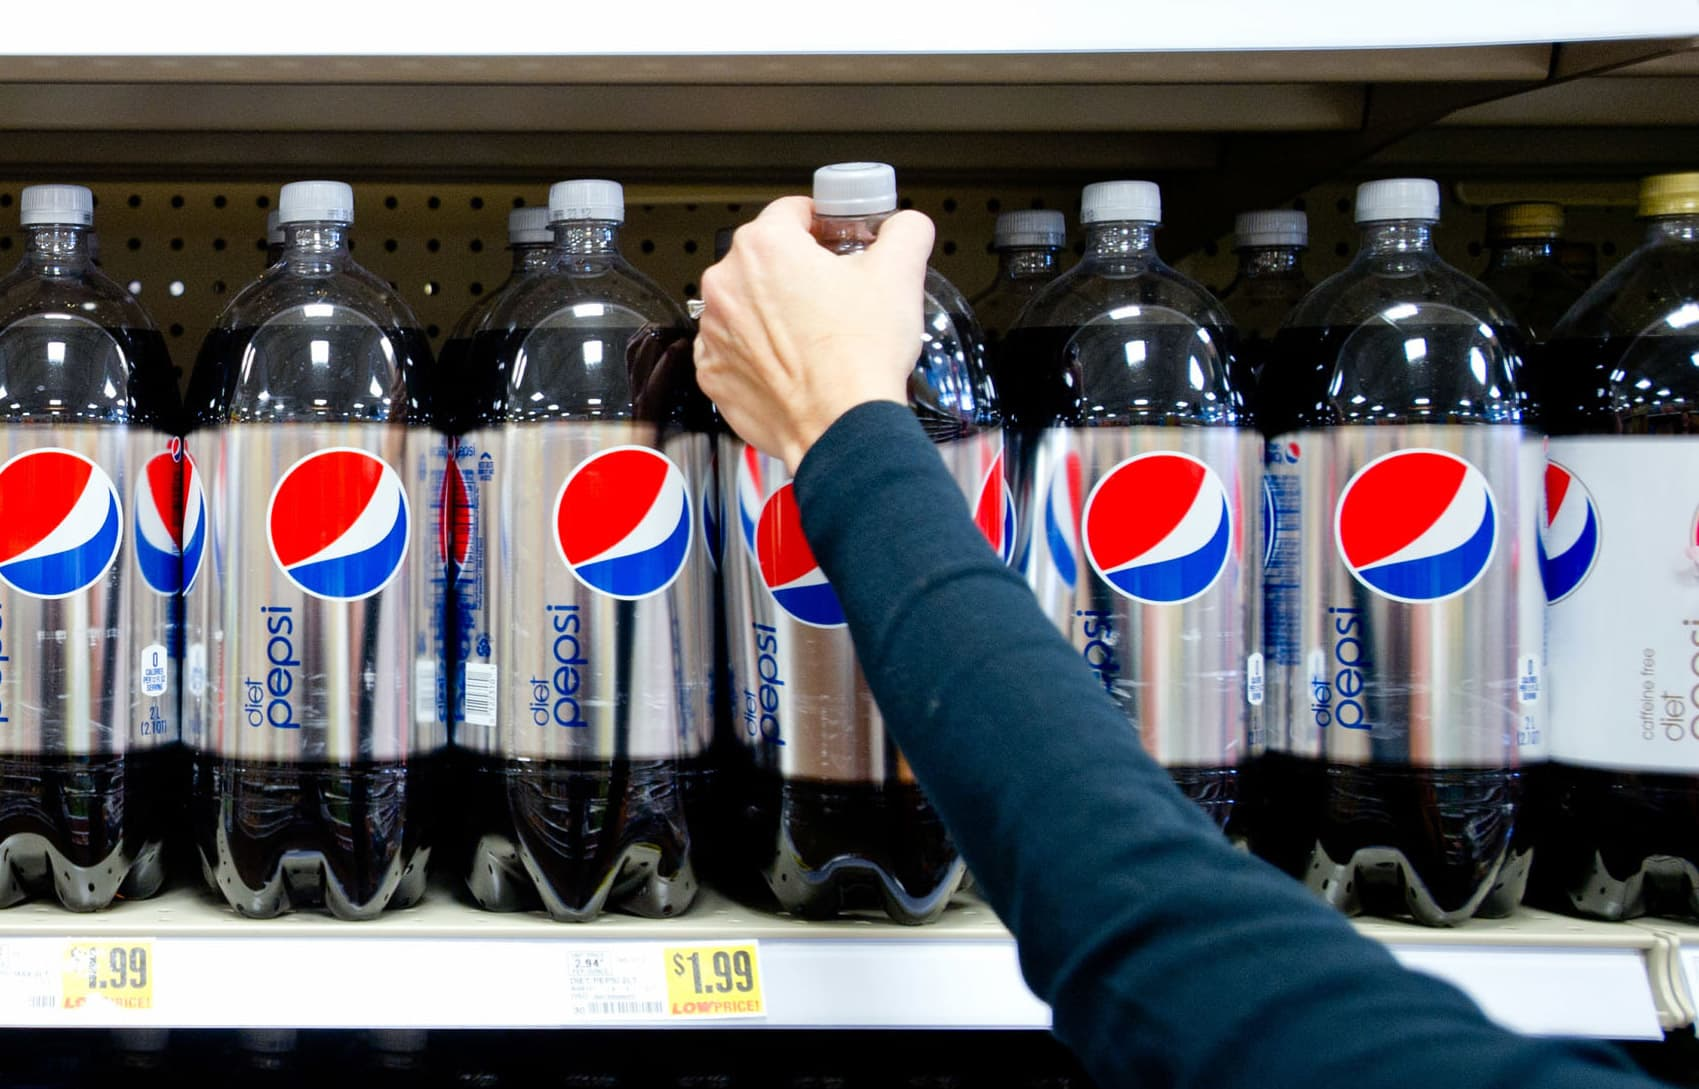 Pepsi's stock jumps as higher advertising spending fuels sales growth and earnings beat